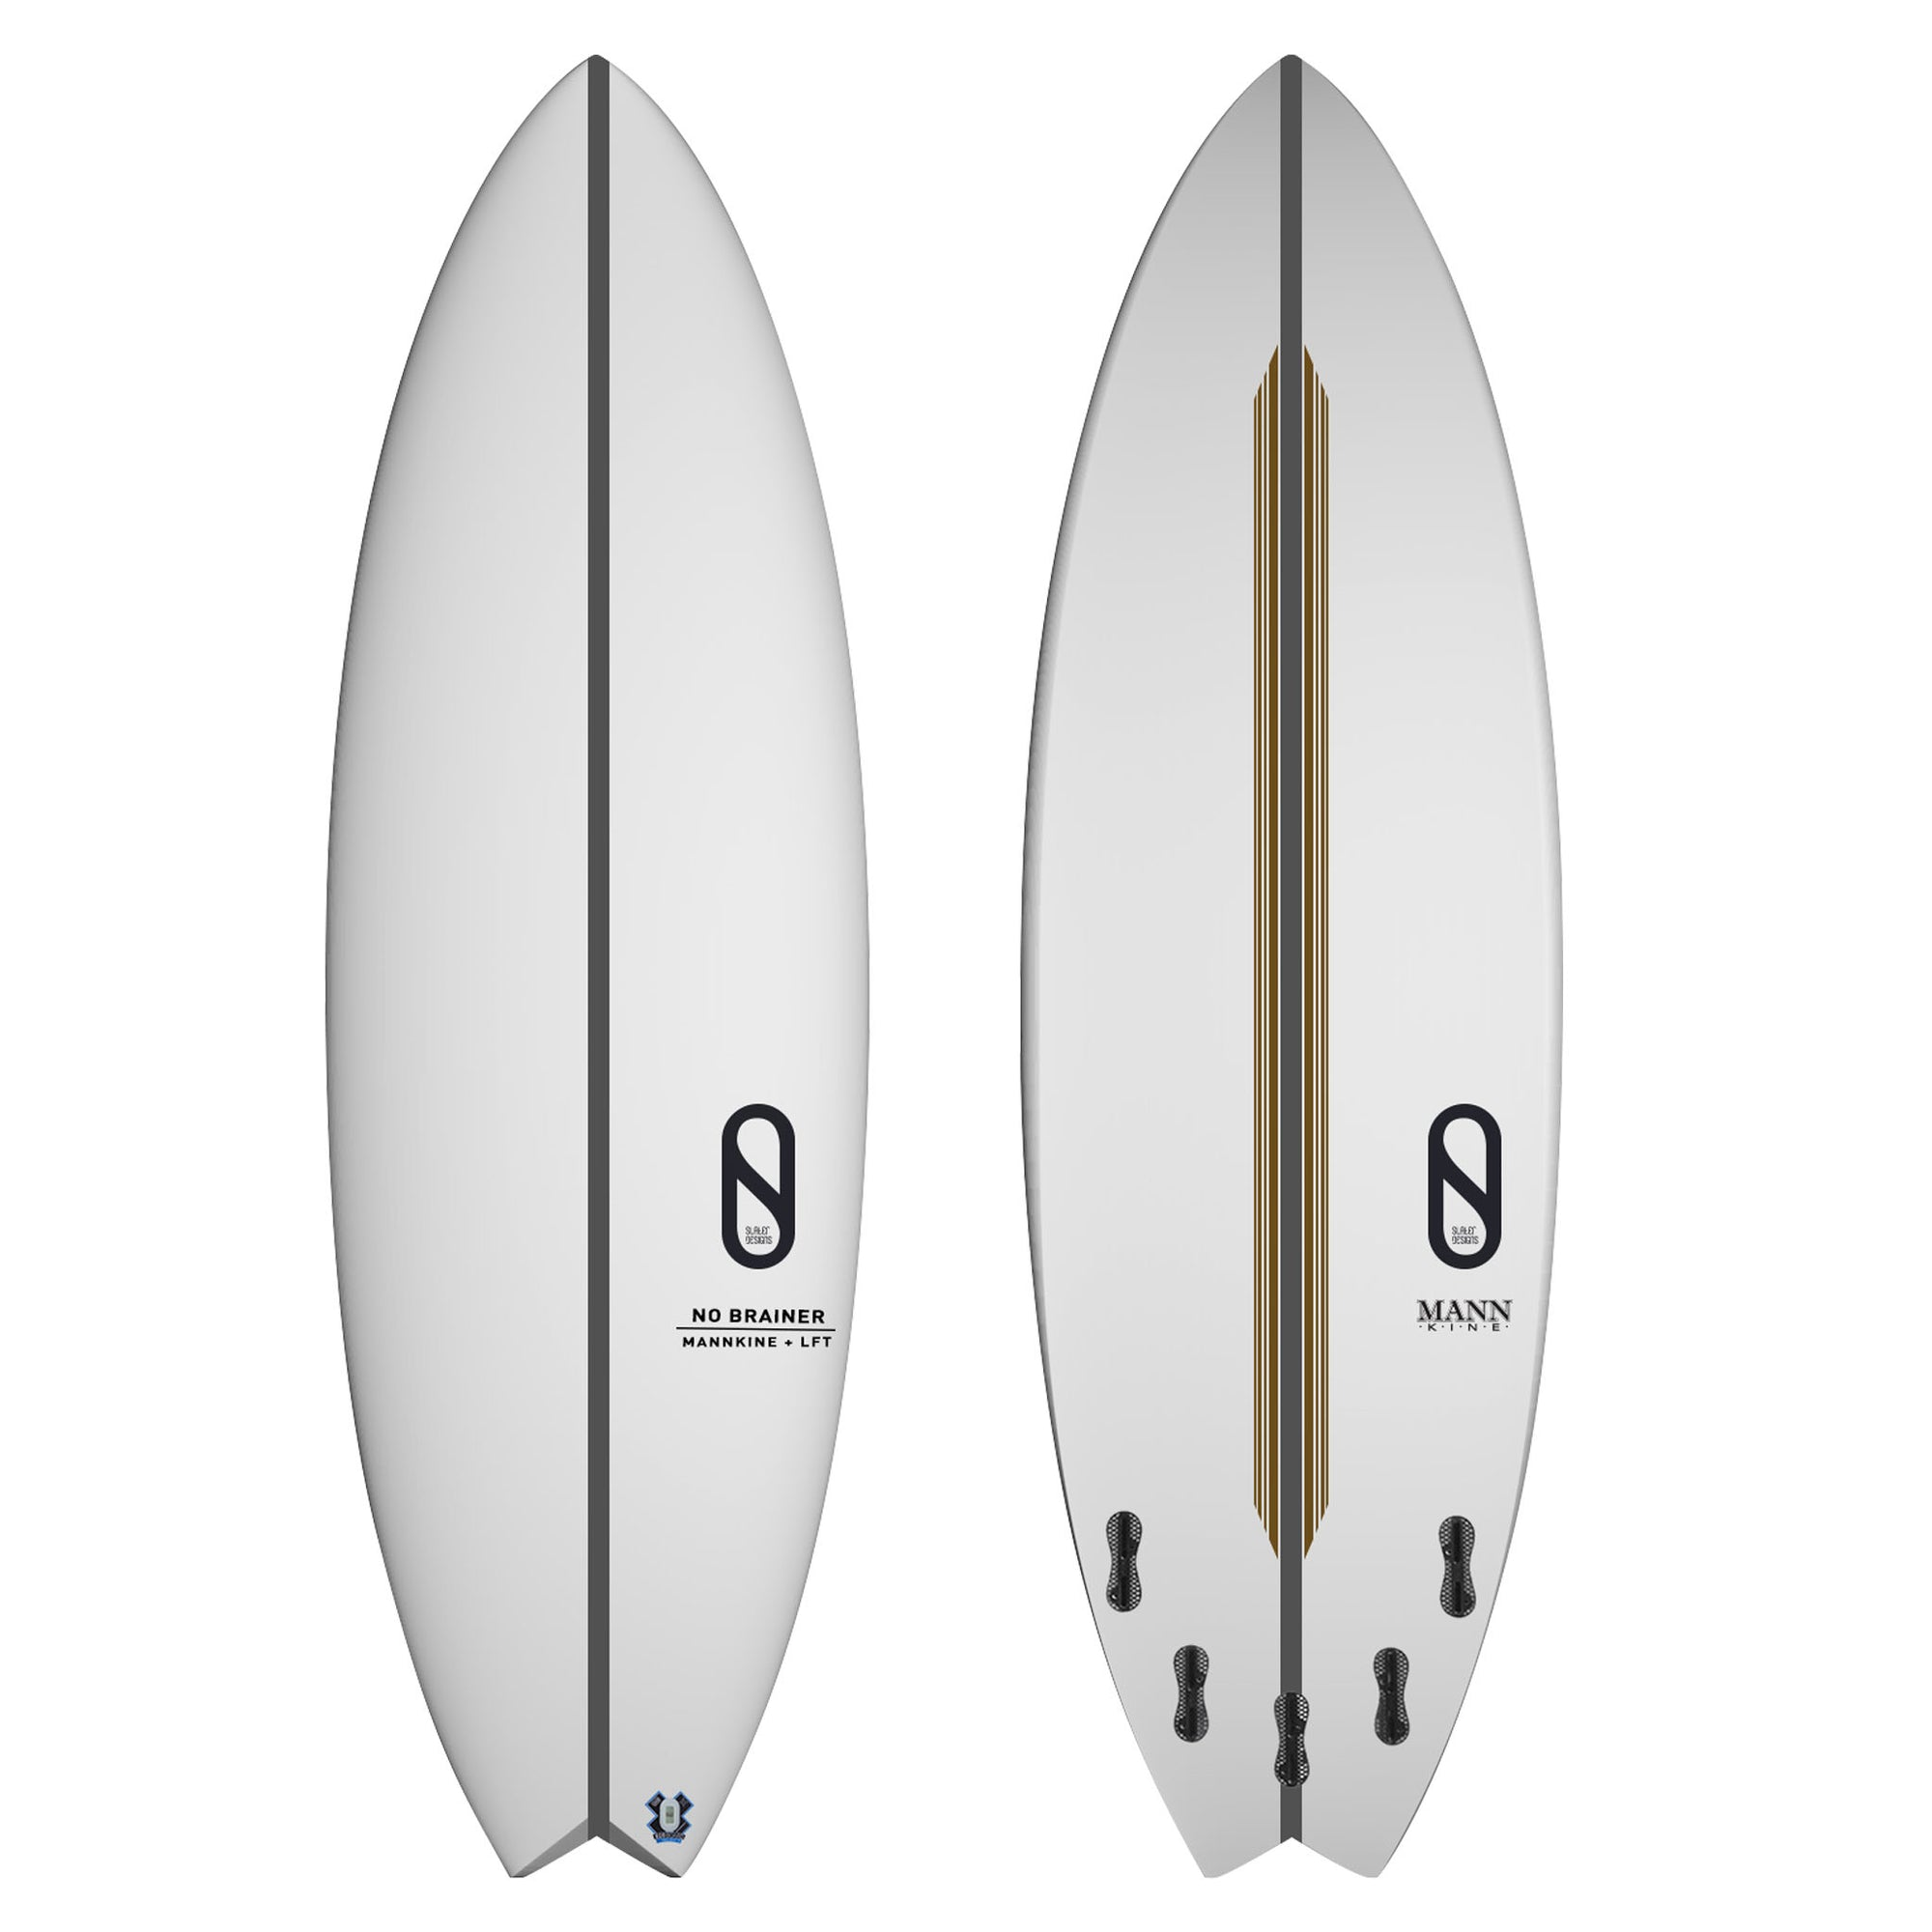 Firewire No Brainer LFT Surfboard